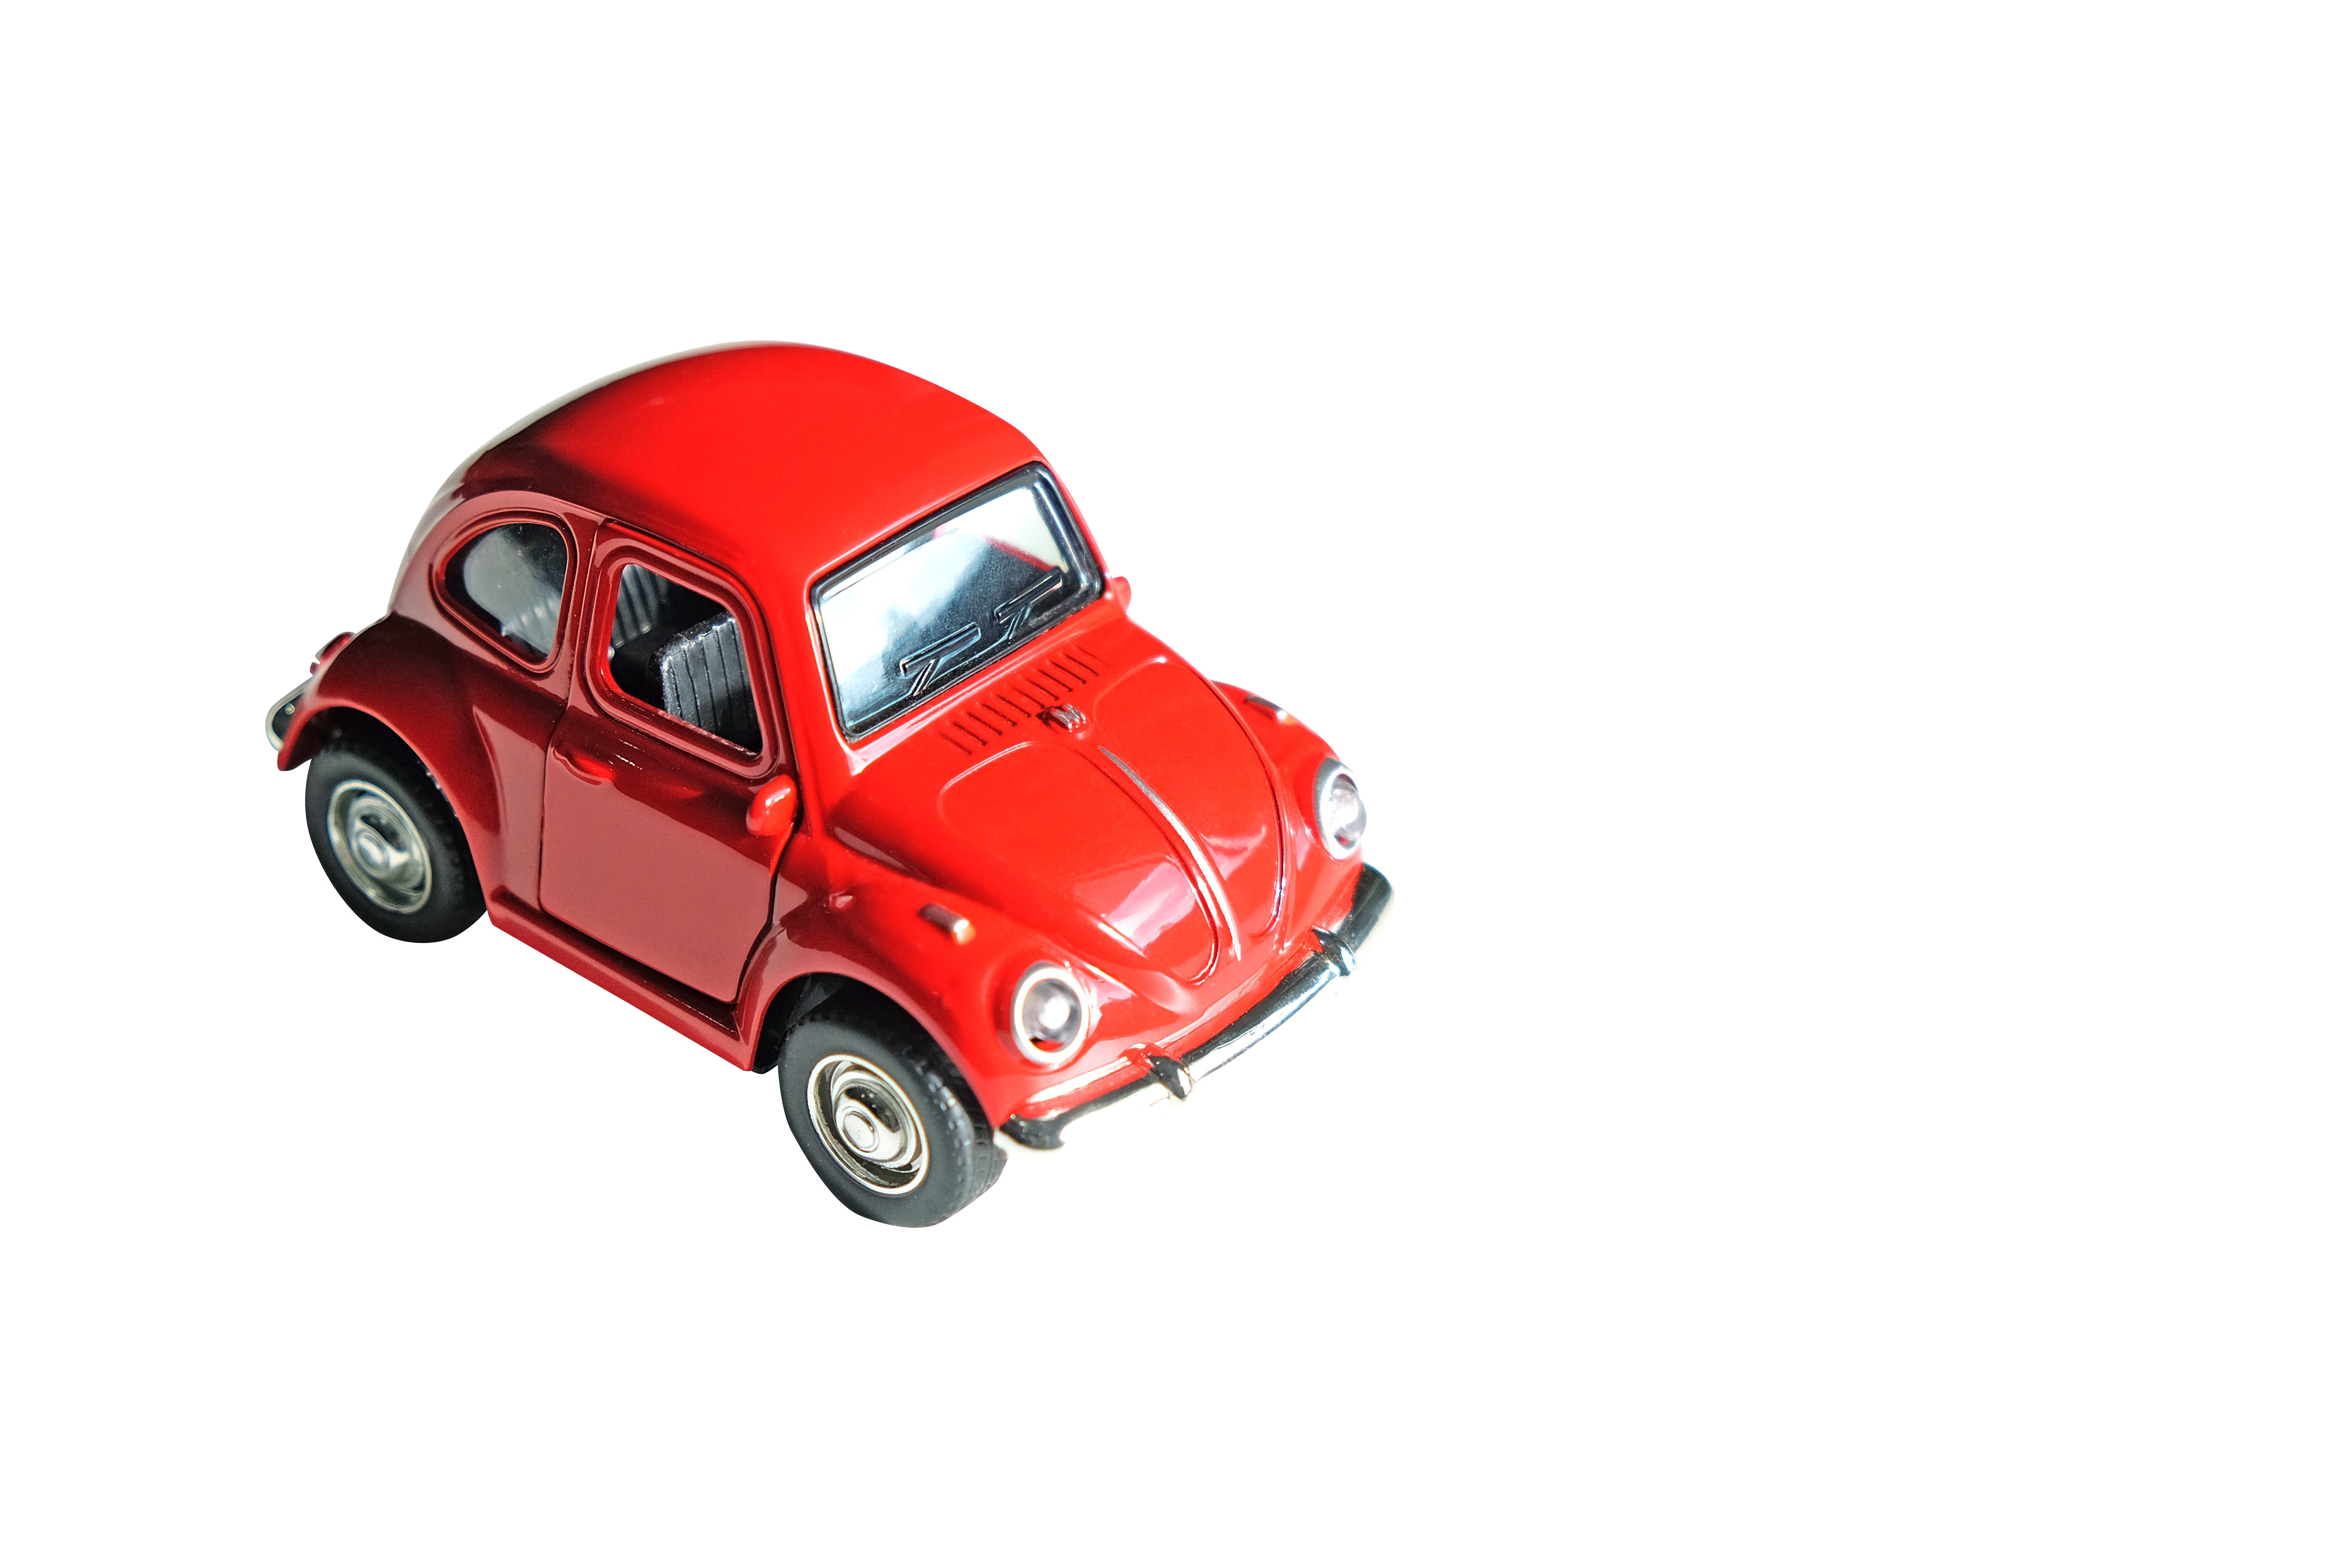 Red Toy Car Transparent Background PNG